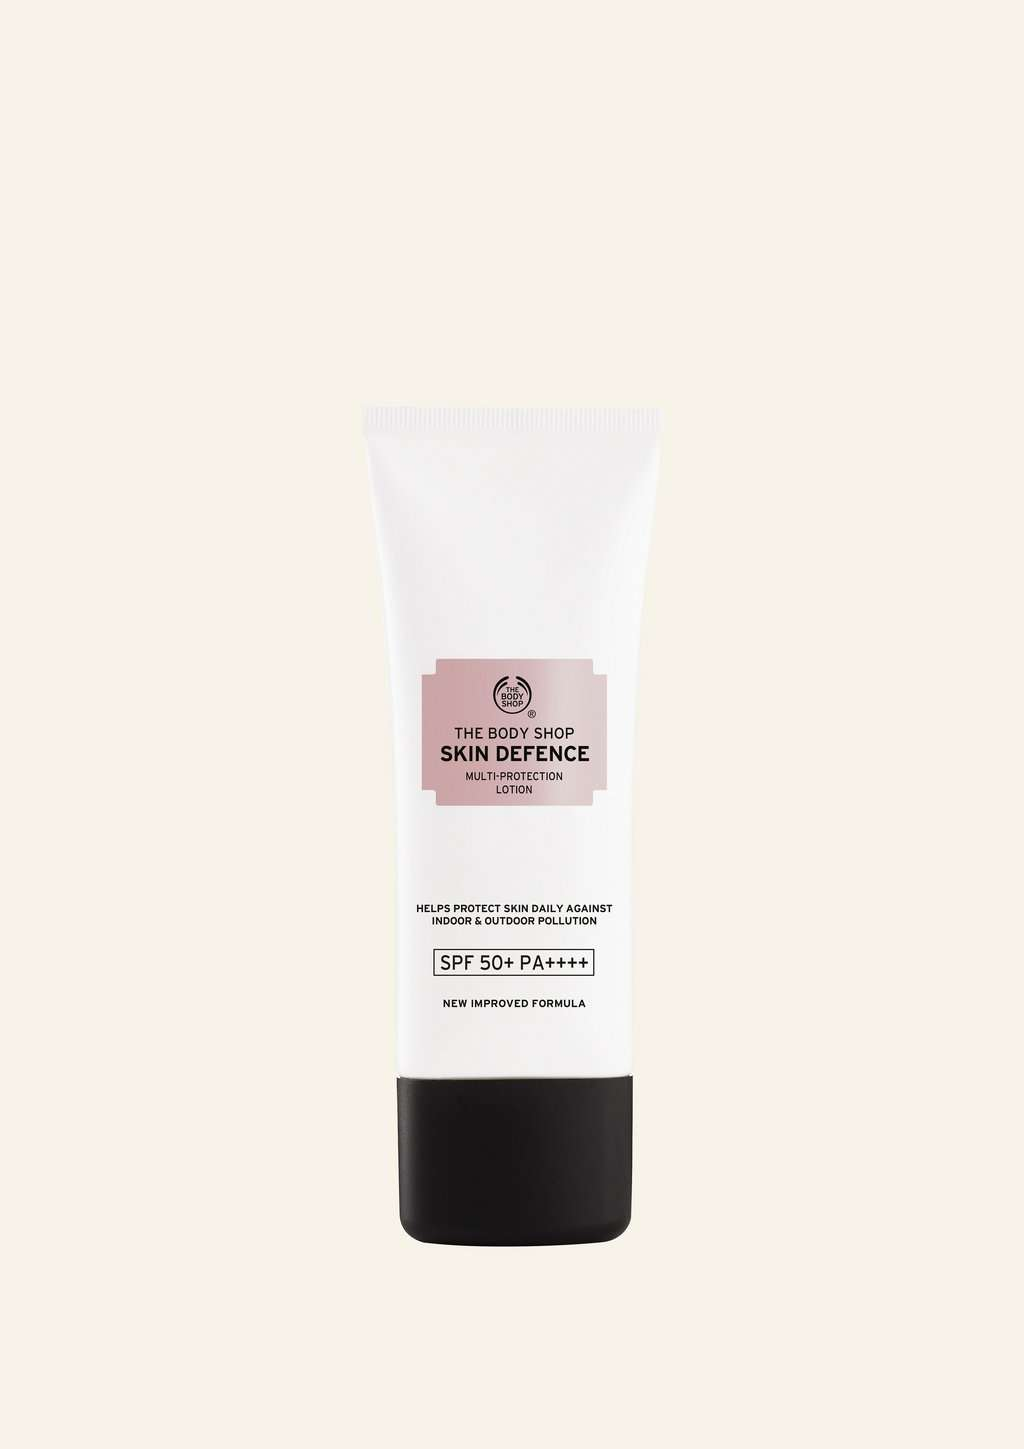 The Body Shop Skin Defence